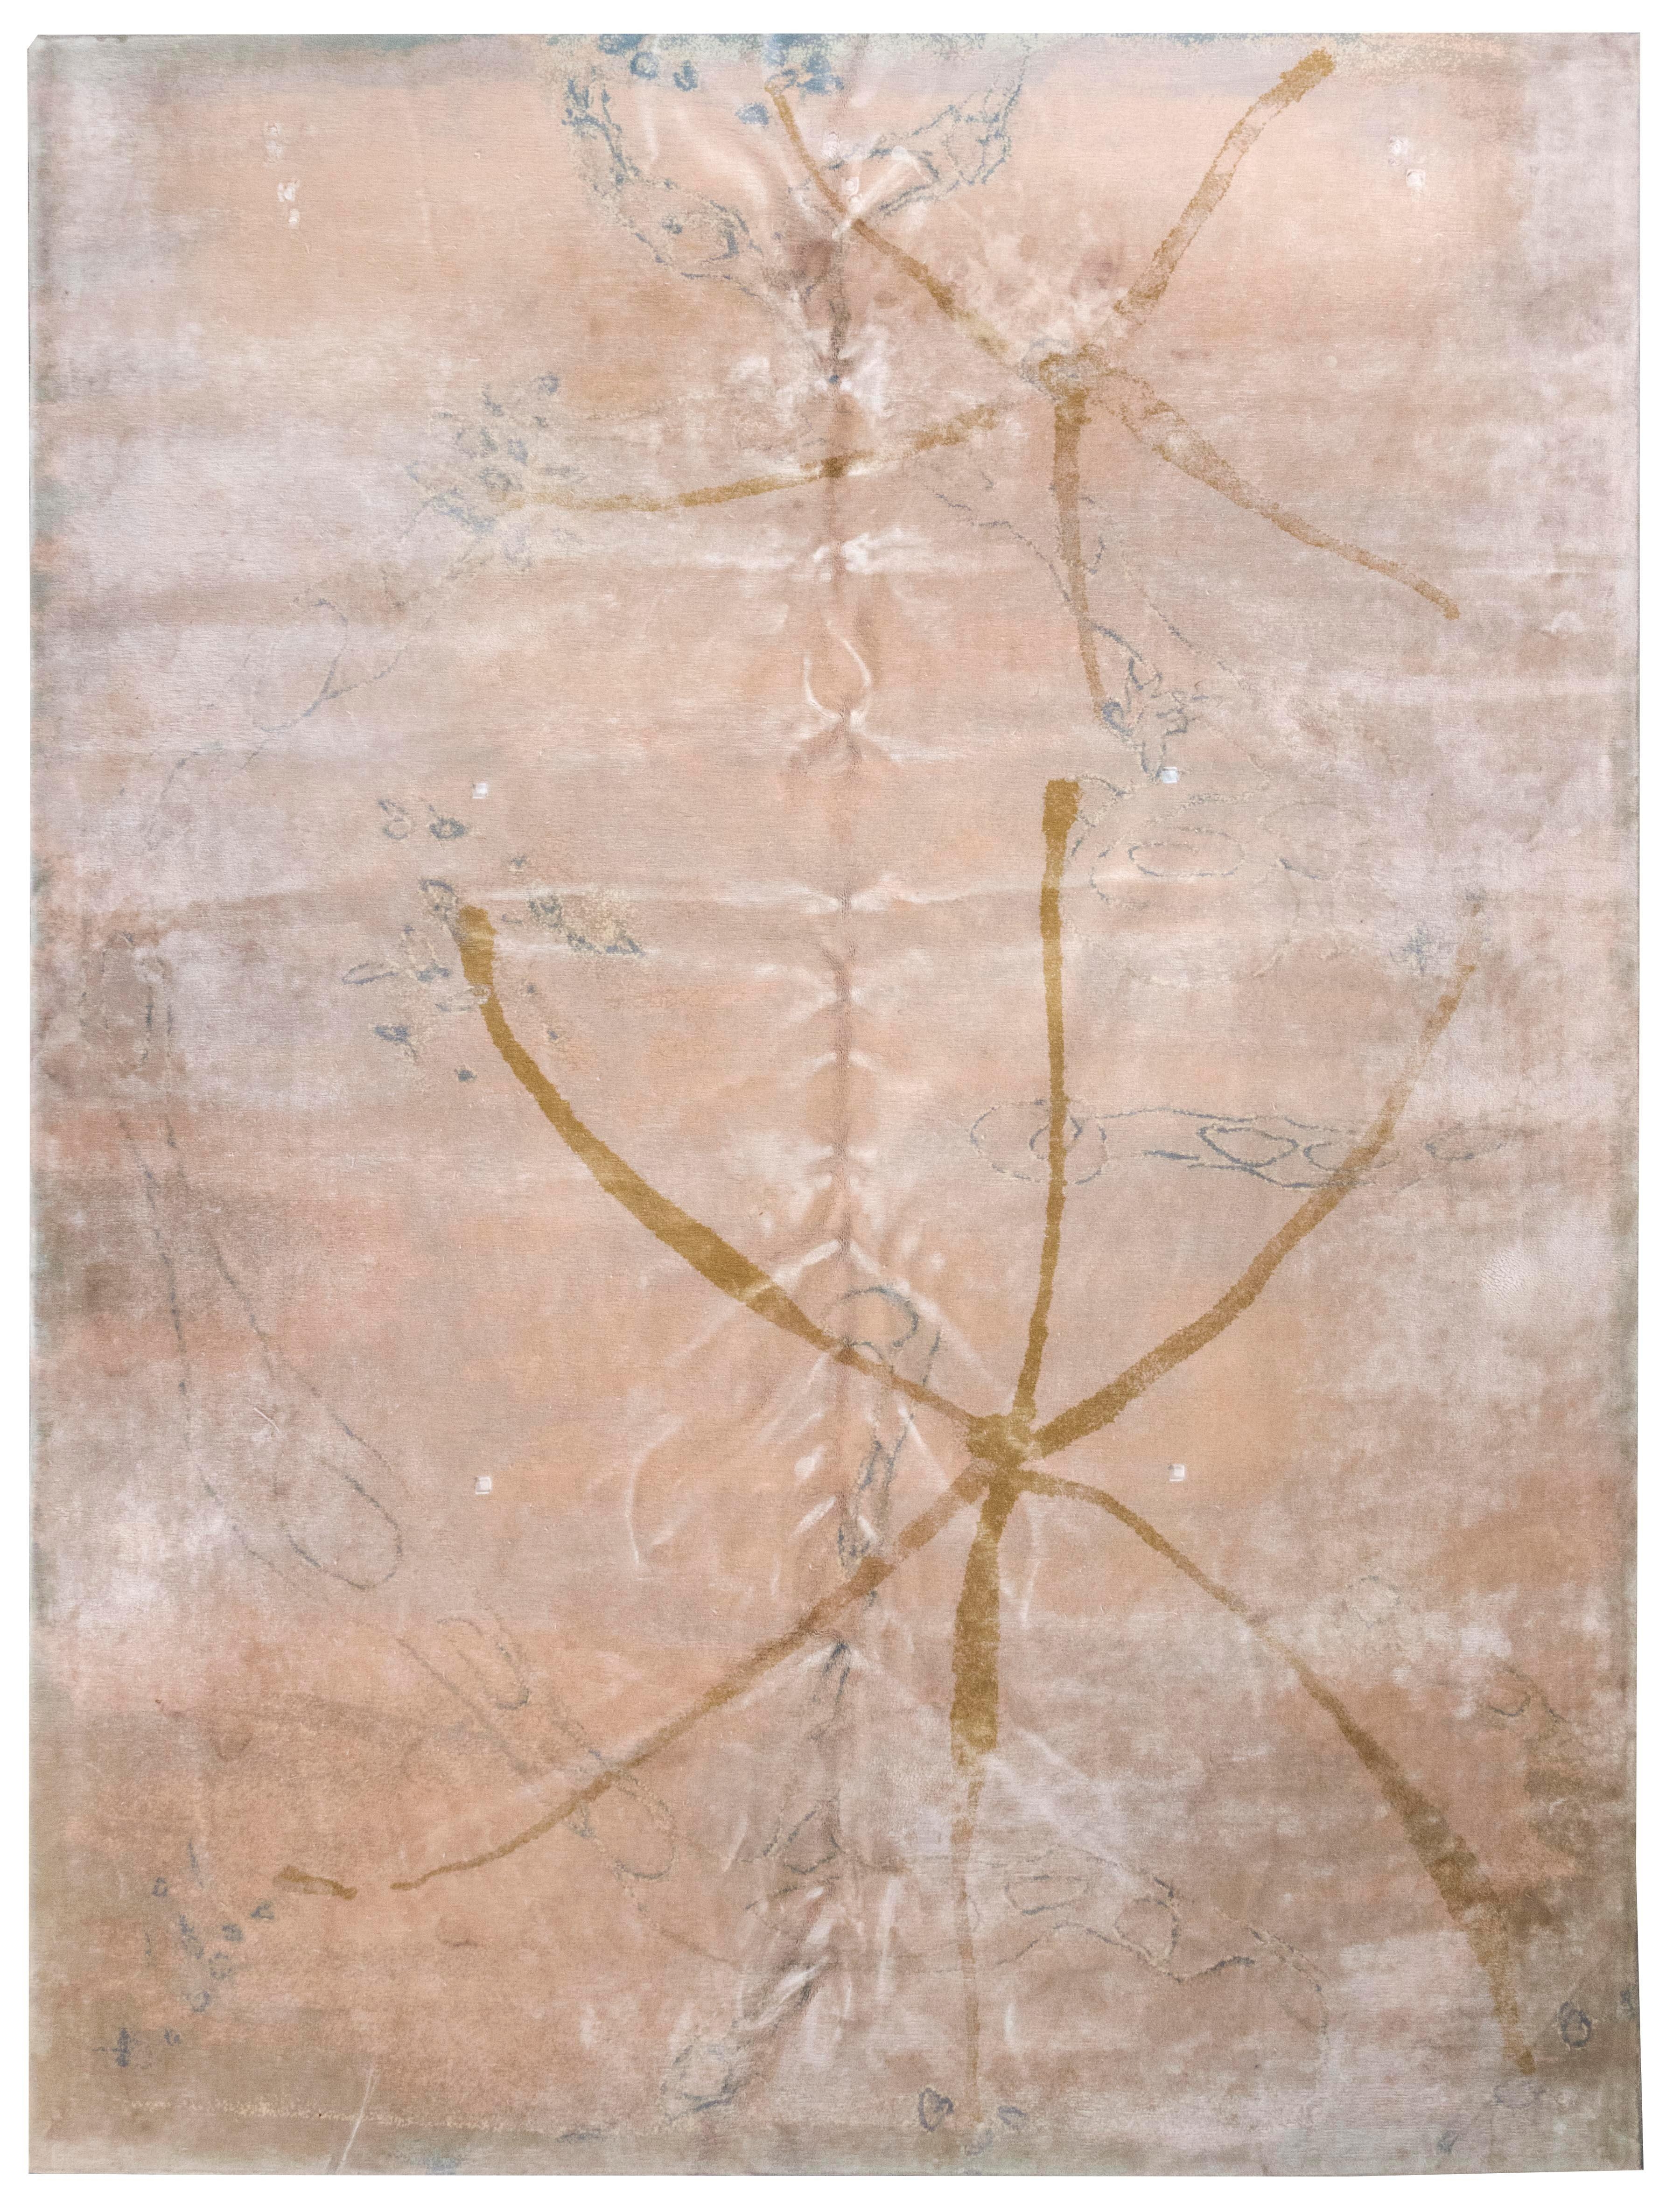 """ORIENTAL RUG: CONTEMPORARY IN AN ABSTRACT FLORAL DESIGN 9'0"""" x 11'11"""" Organic elements of brassy gold, beige and bluish-gray on a mo."""